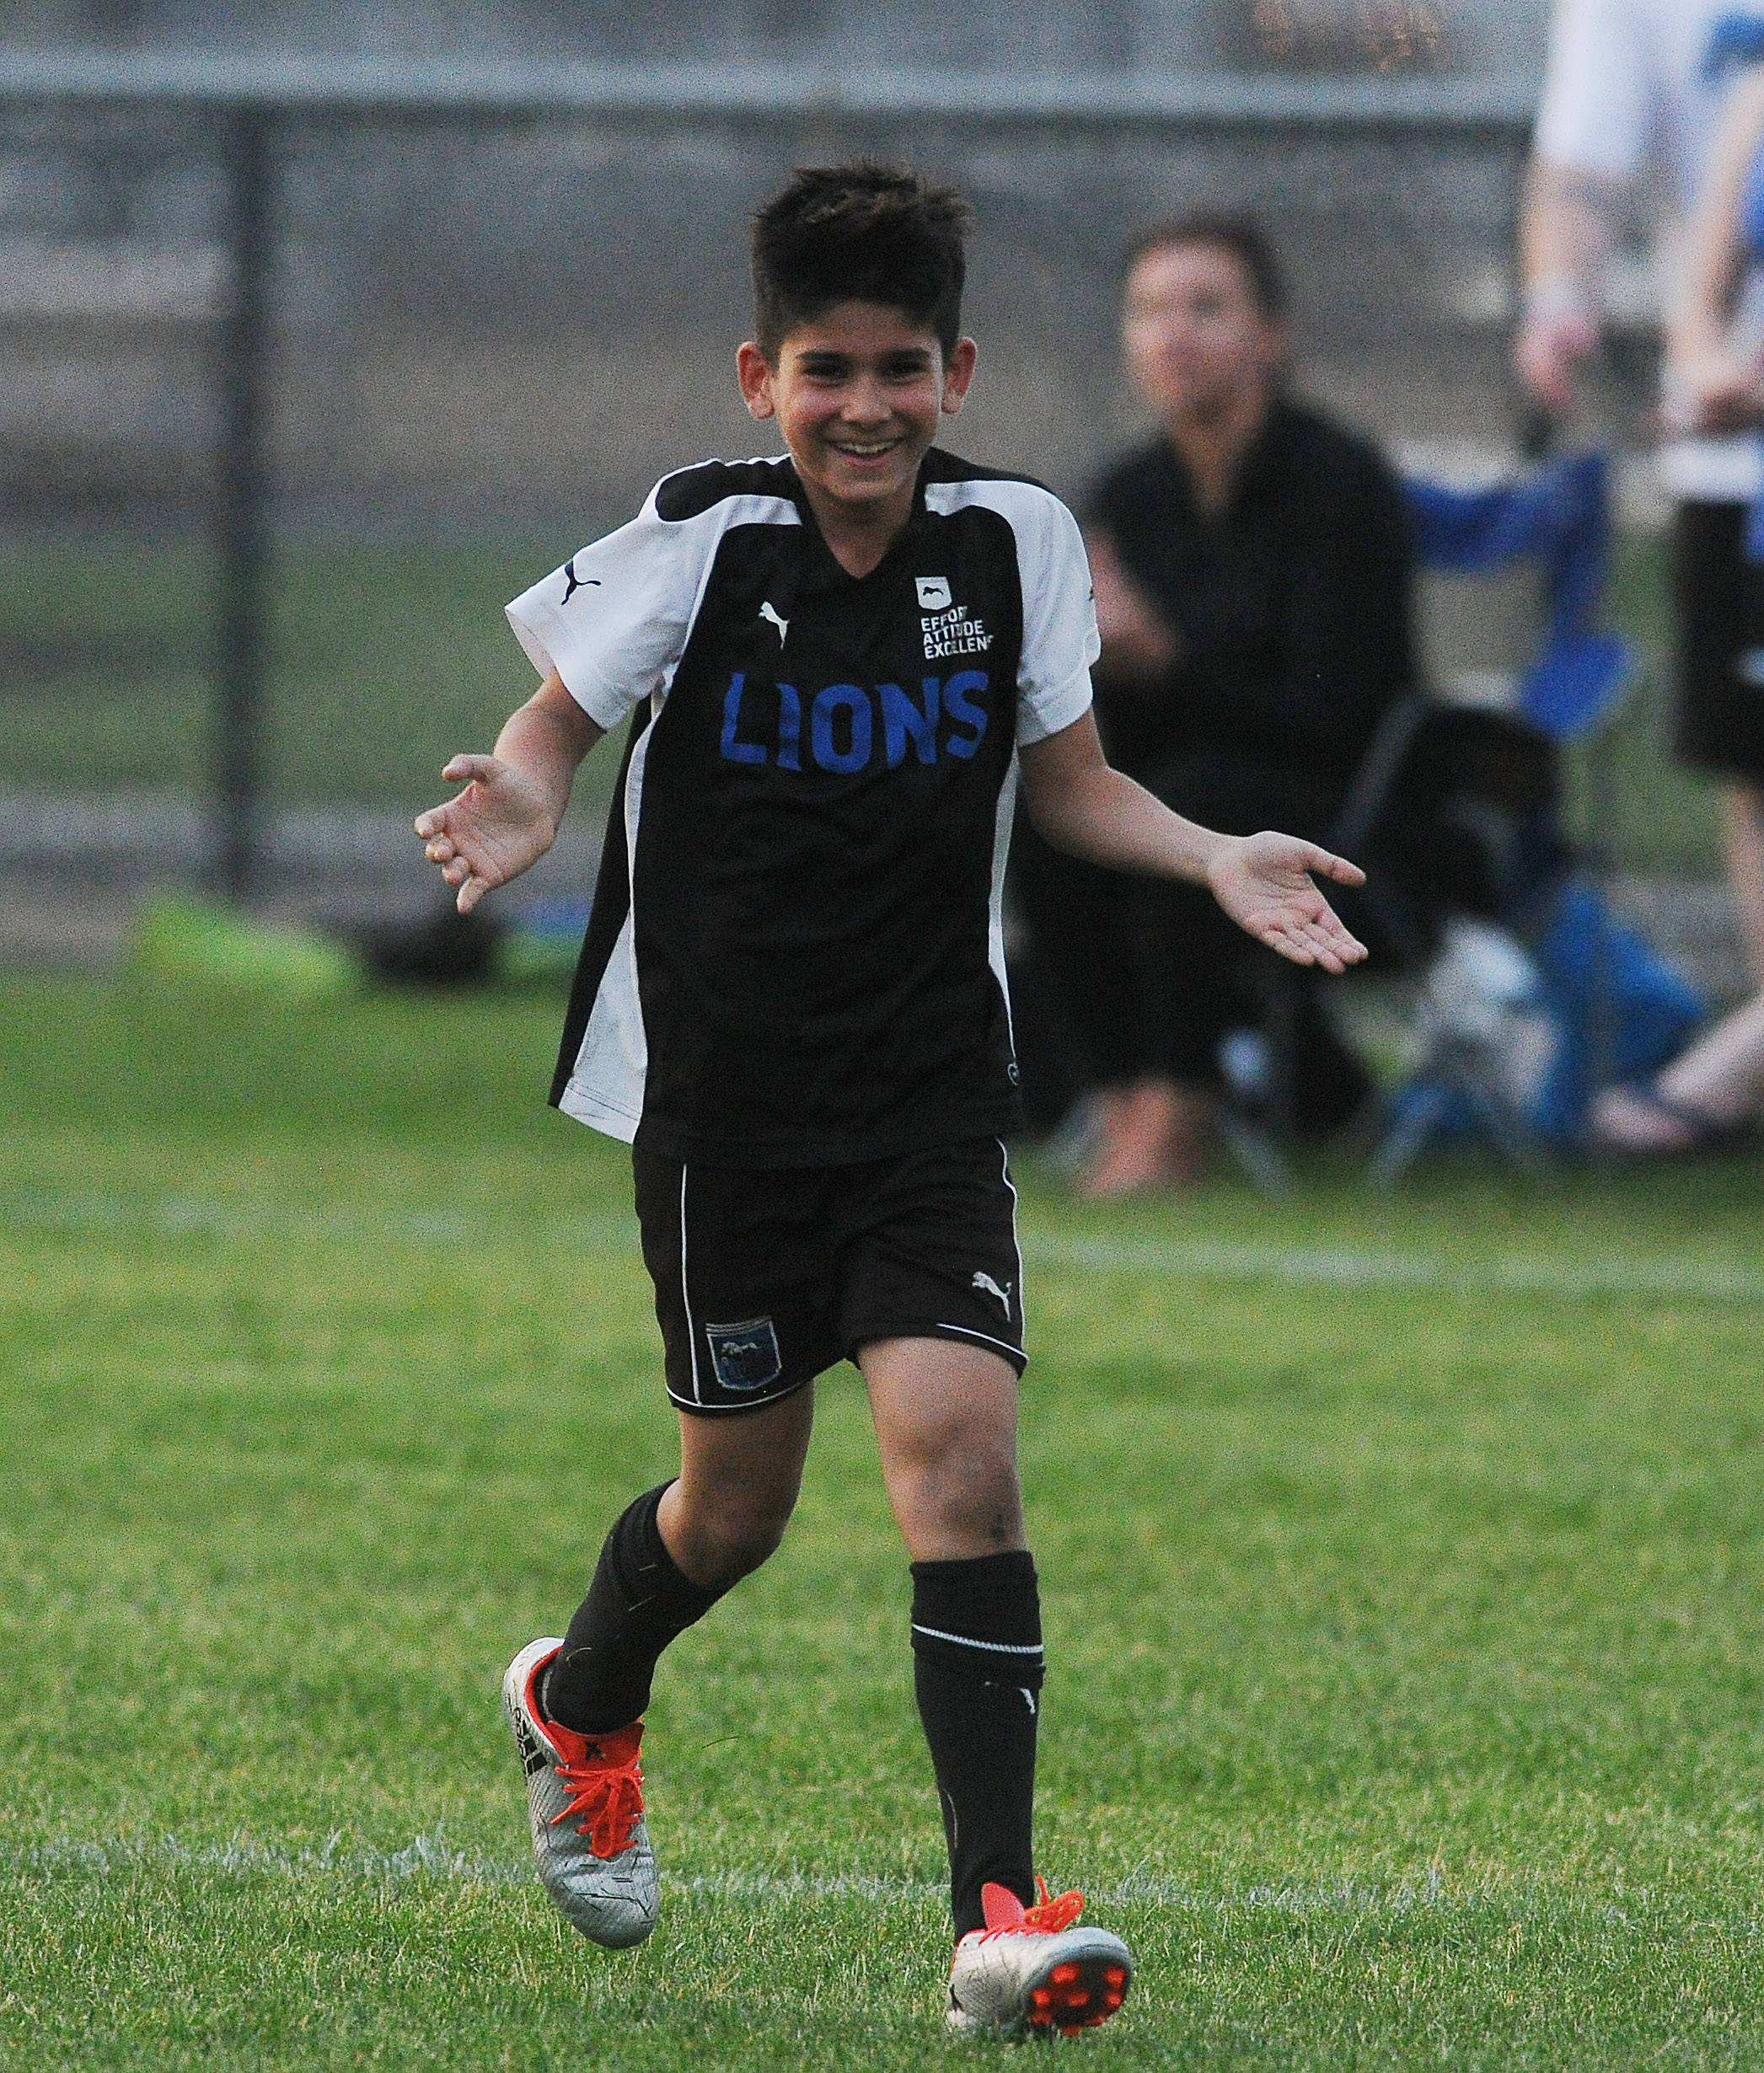 Lions SC U10 player Zach Abraham, defender, reacts after scoring a goal against the Chicago CSA Barcelona at the Grove United Memorial Day Shootout soccer tournament Friday in Schaumburg.